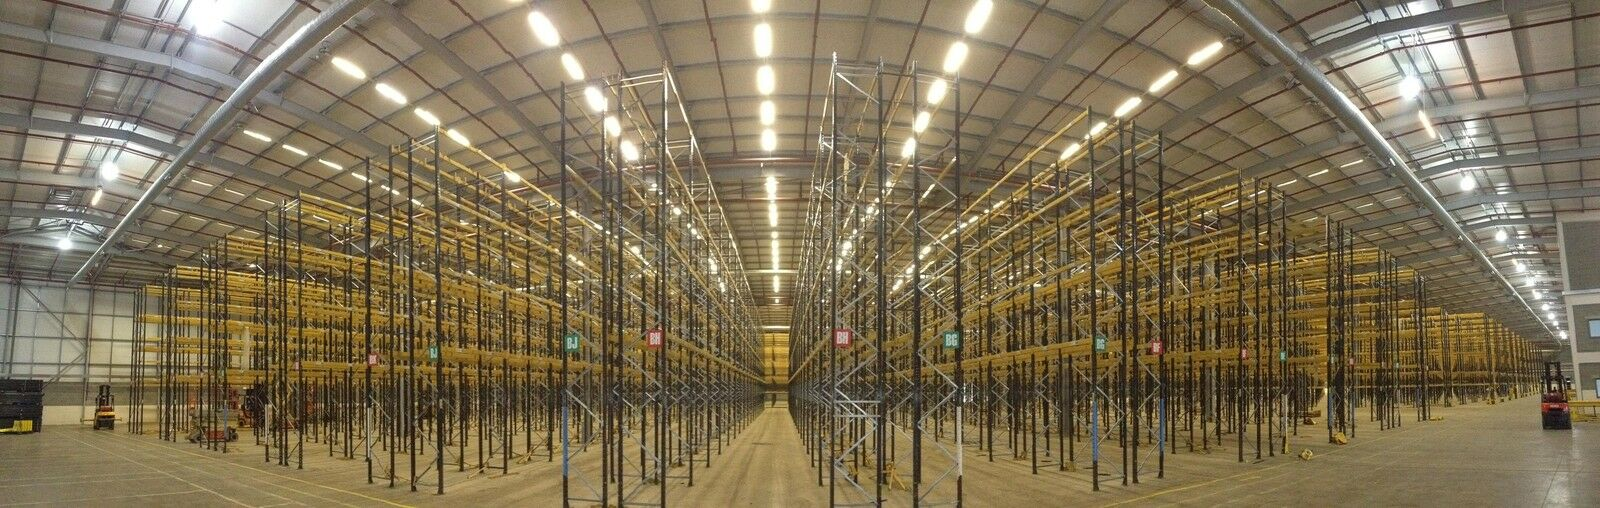 Warehouse Shelving, Pallet Racking